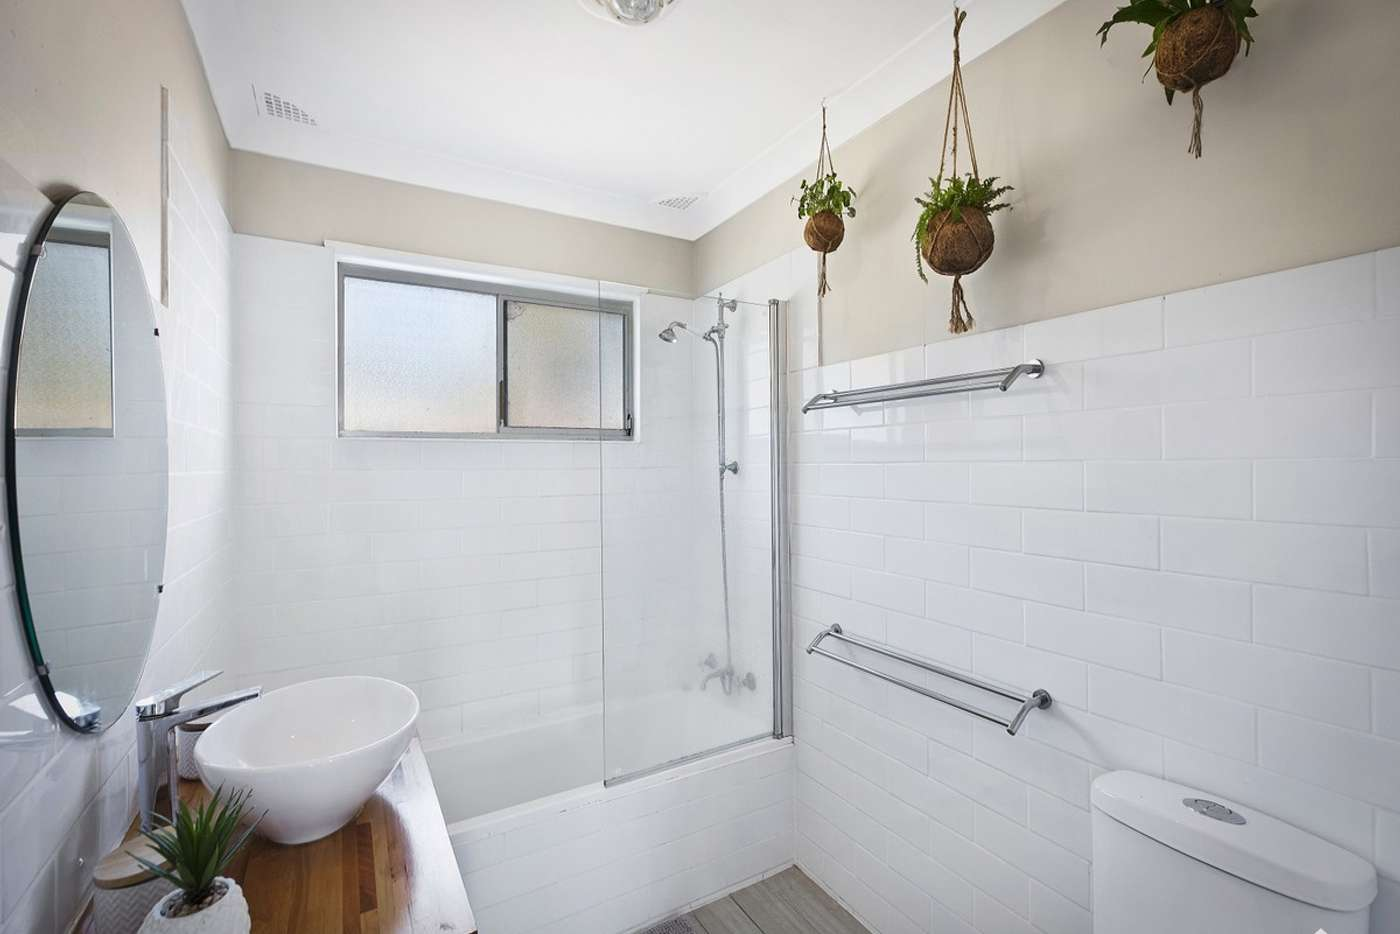 Sixth view of Homely house listing, 5 Summerland Road, Summerland Point NSW 2259